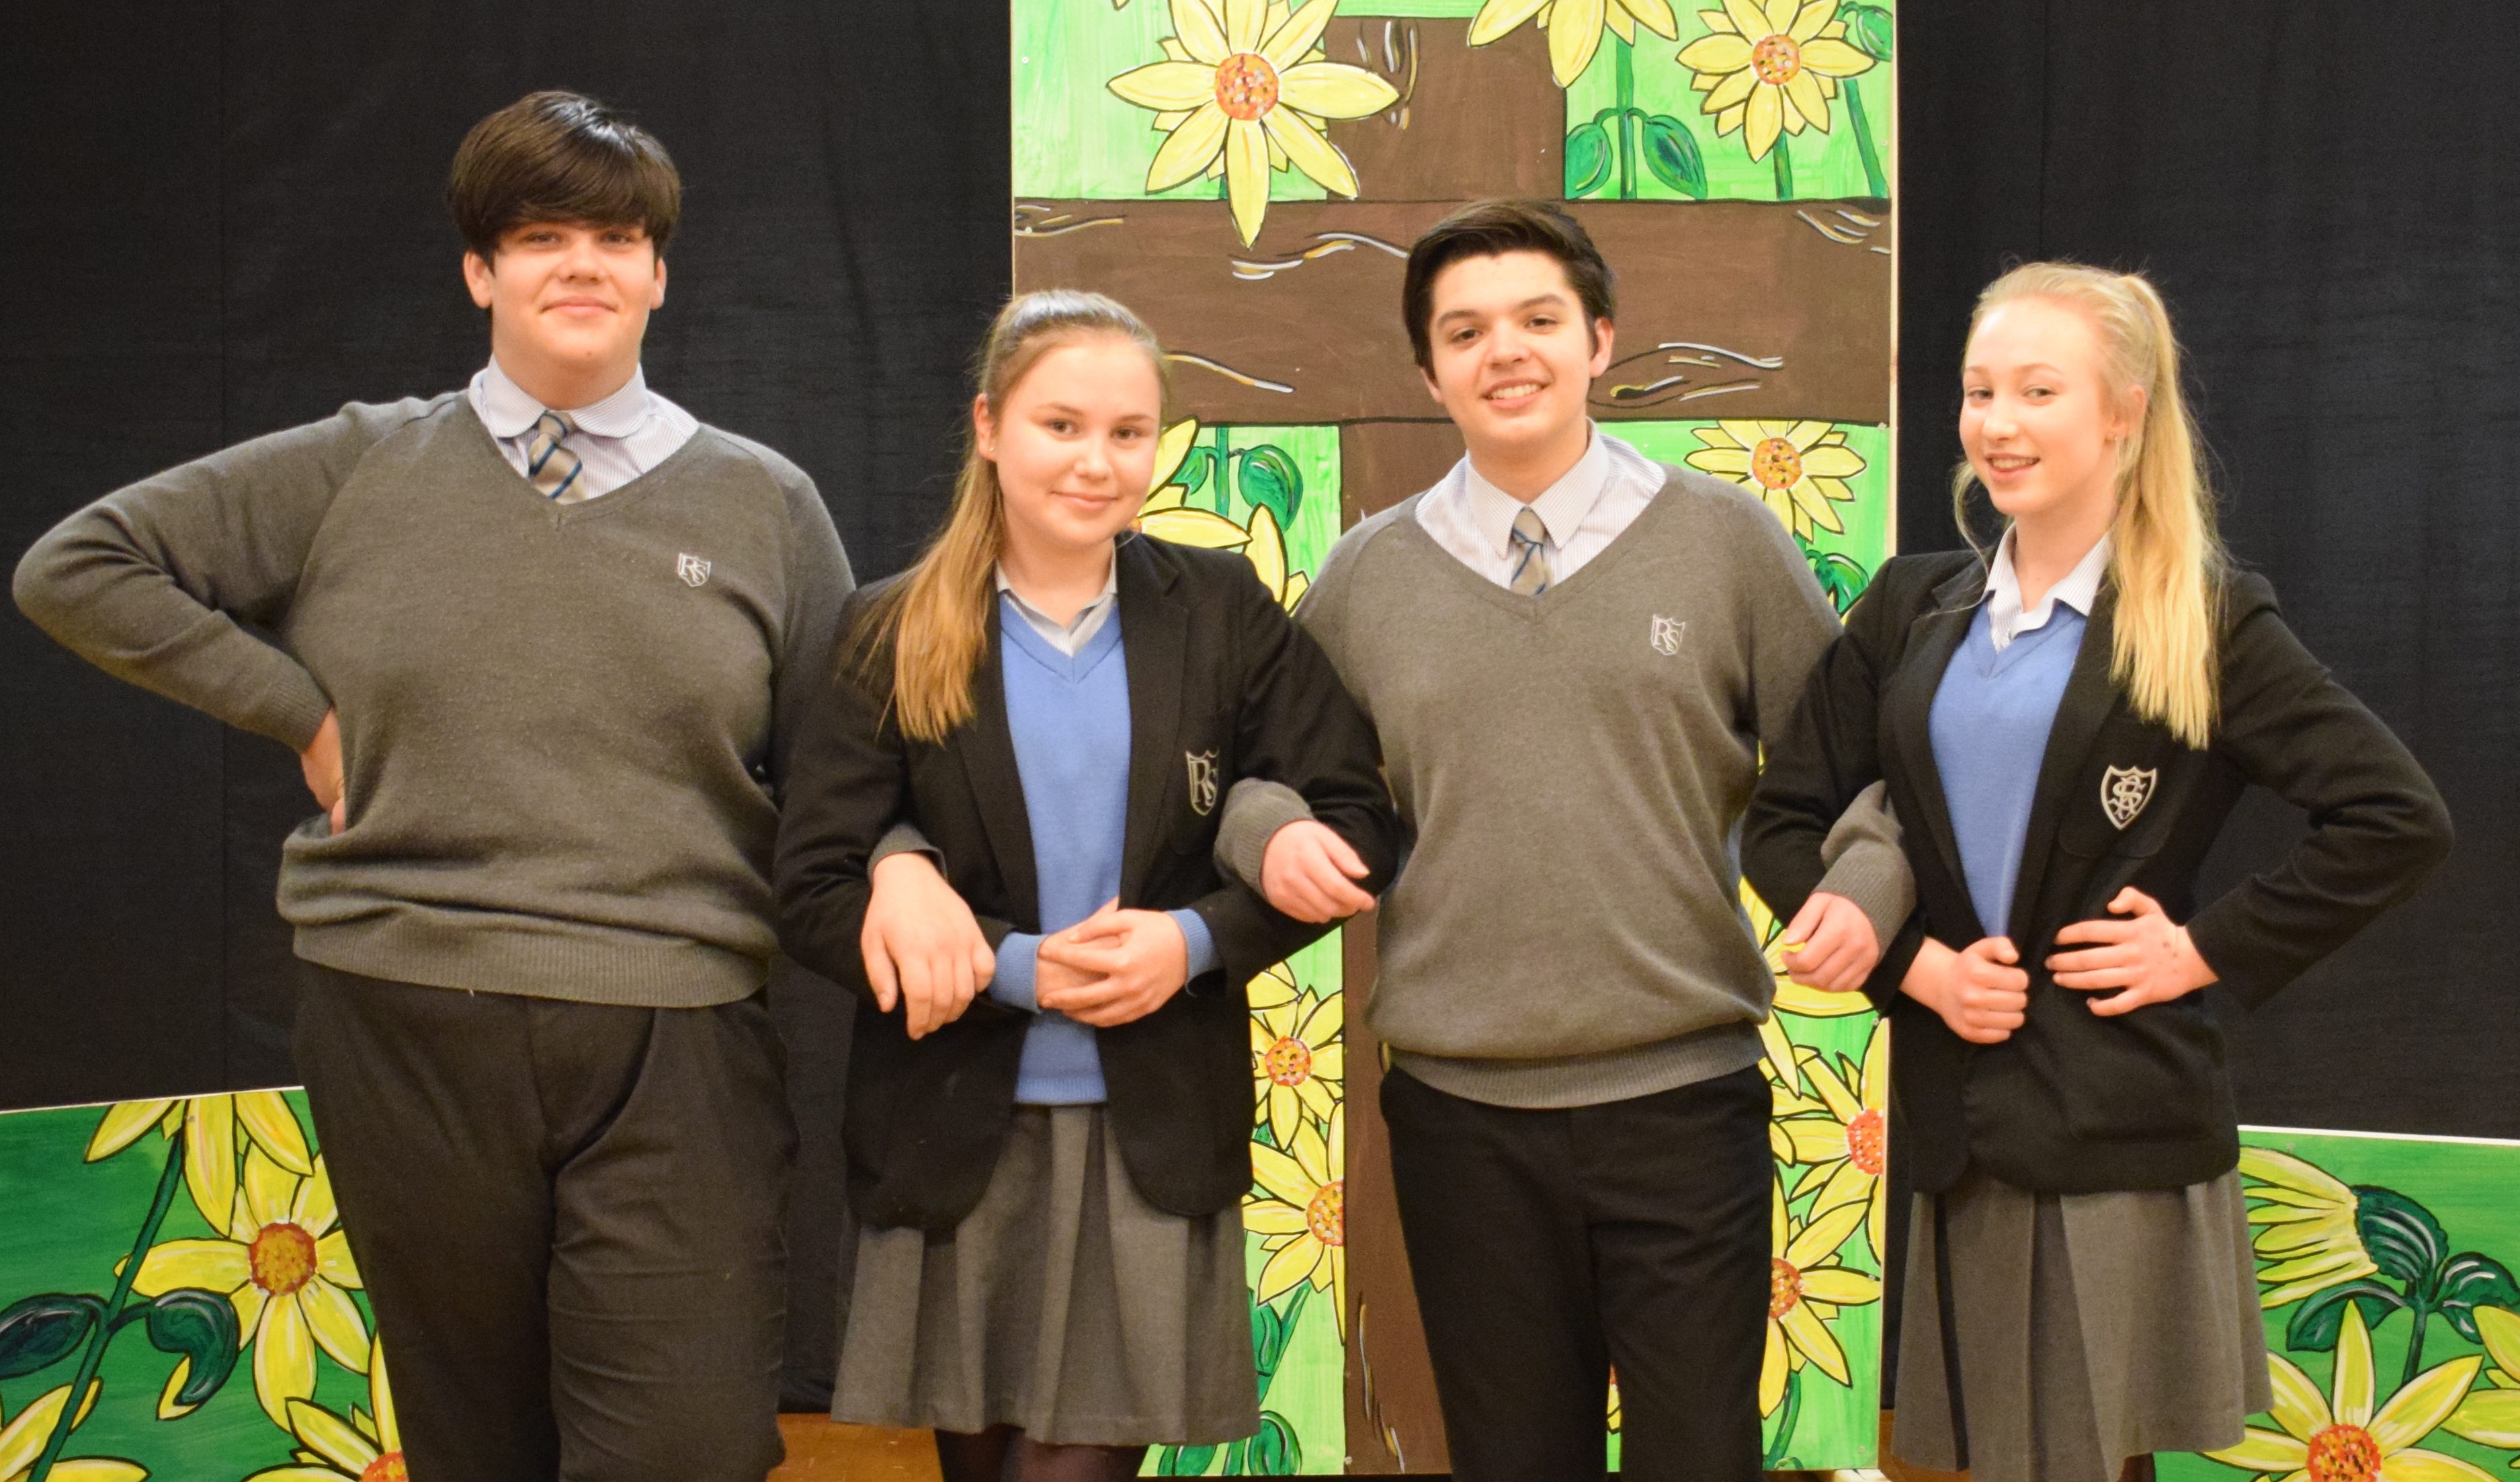 Andover school rehearsals for Wizard of Oz well underway